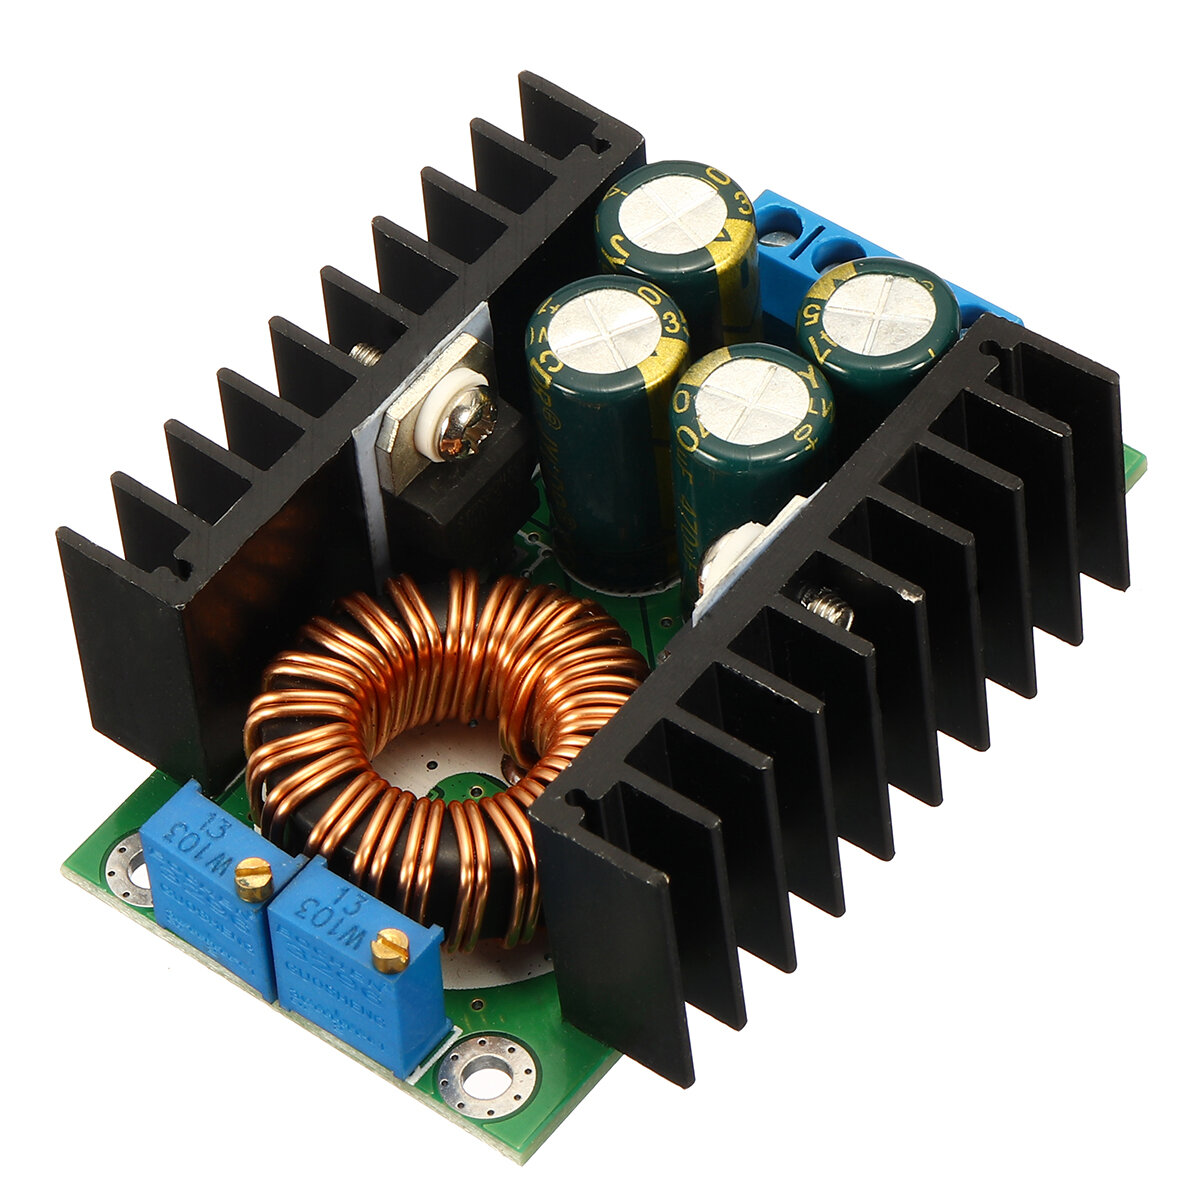 DC-DC CC CV Buck Converter Board Step Down Power Supply Module 7-32V to 0.8-28V 12A